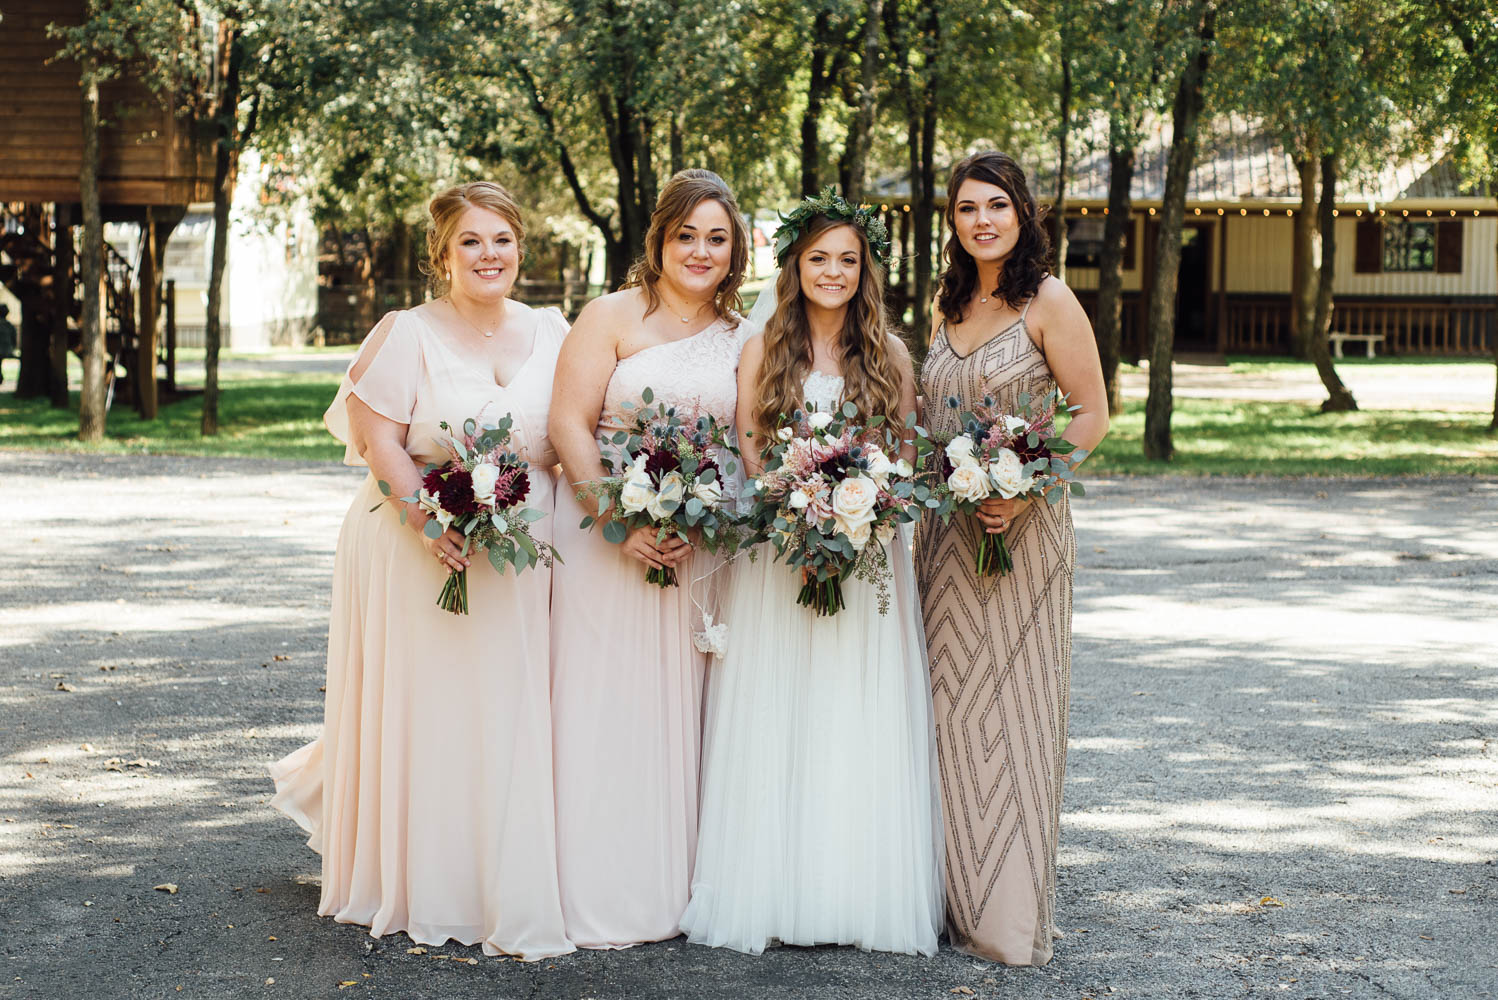 bridesmaids at classic oaks ranch wedding, DFW wedding photographer with natural light and modern coloring